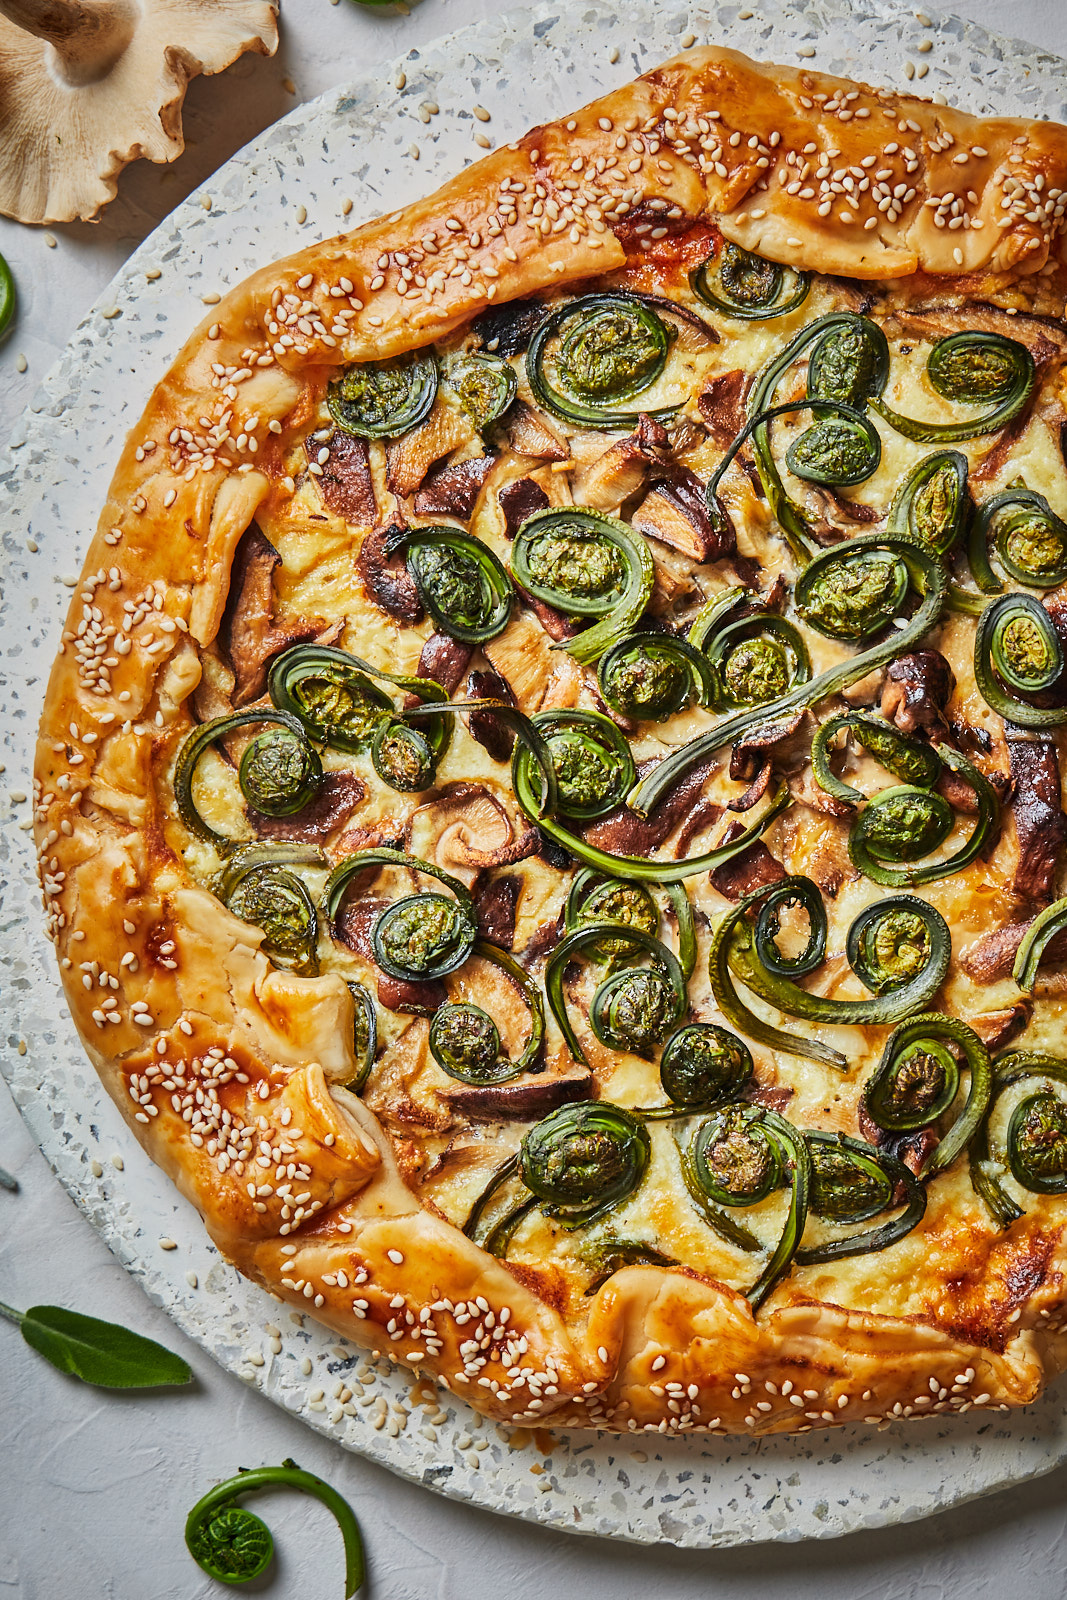 Fiddlehead and Mushroom Galette ready to eat